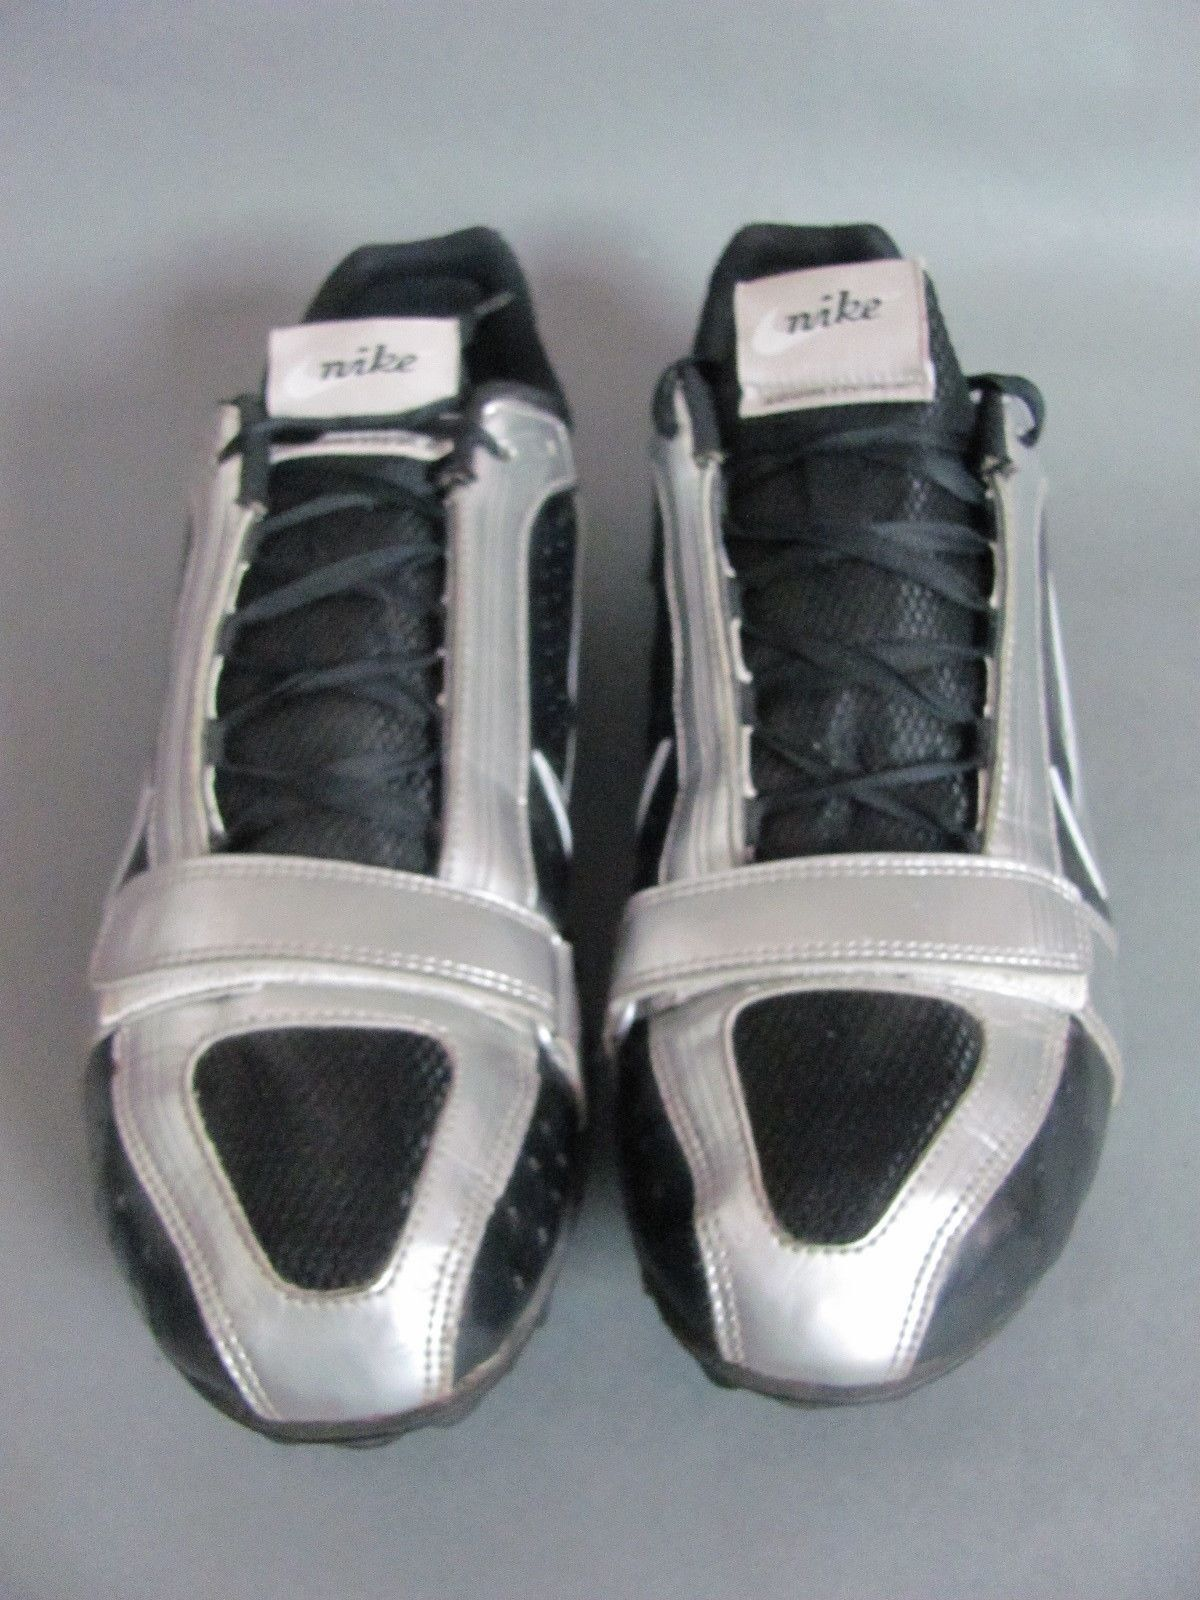 40a9c1fabf38 ... Nike Nike Nike Zoom Rival S IV Track and Field Running Shoes 317003 001  US 10 ...